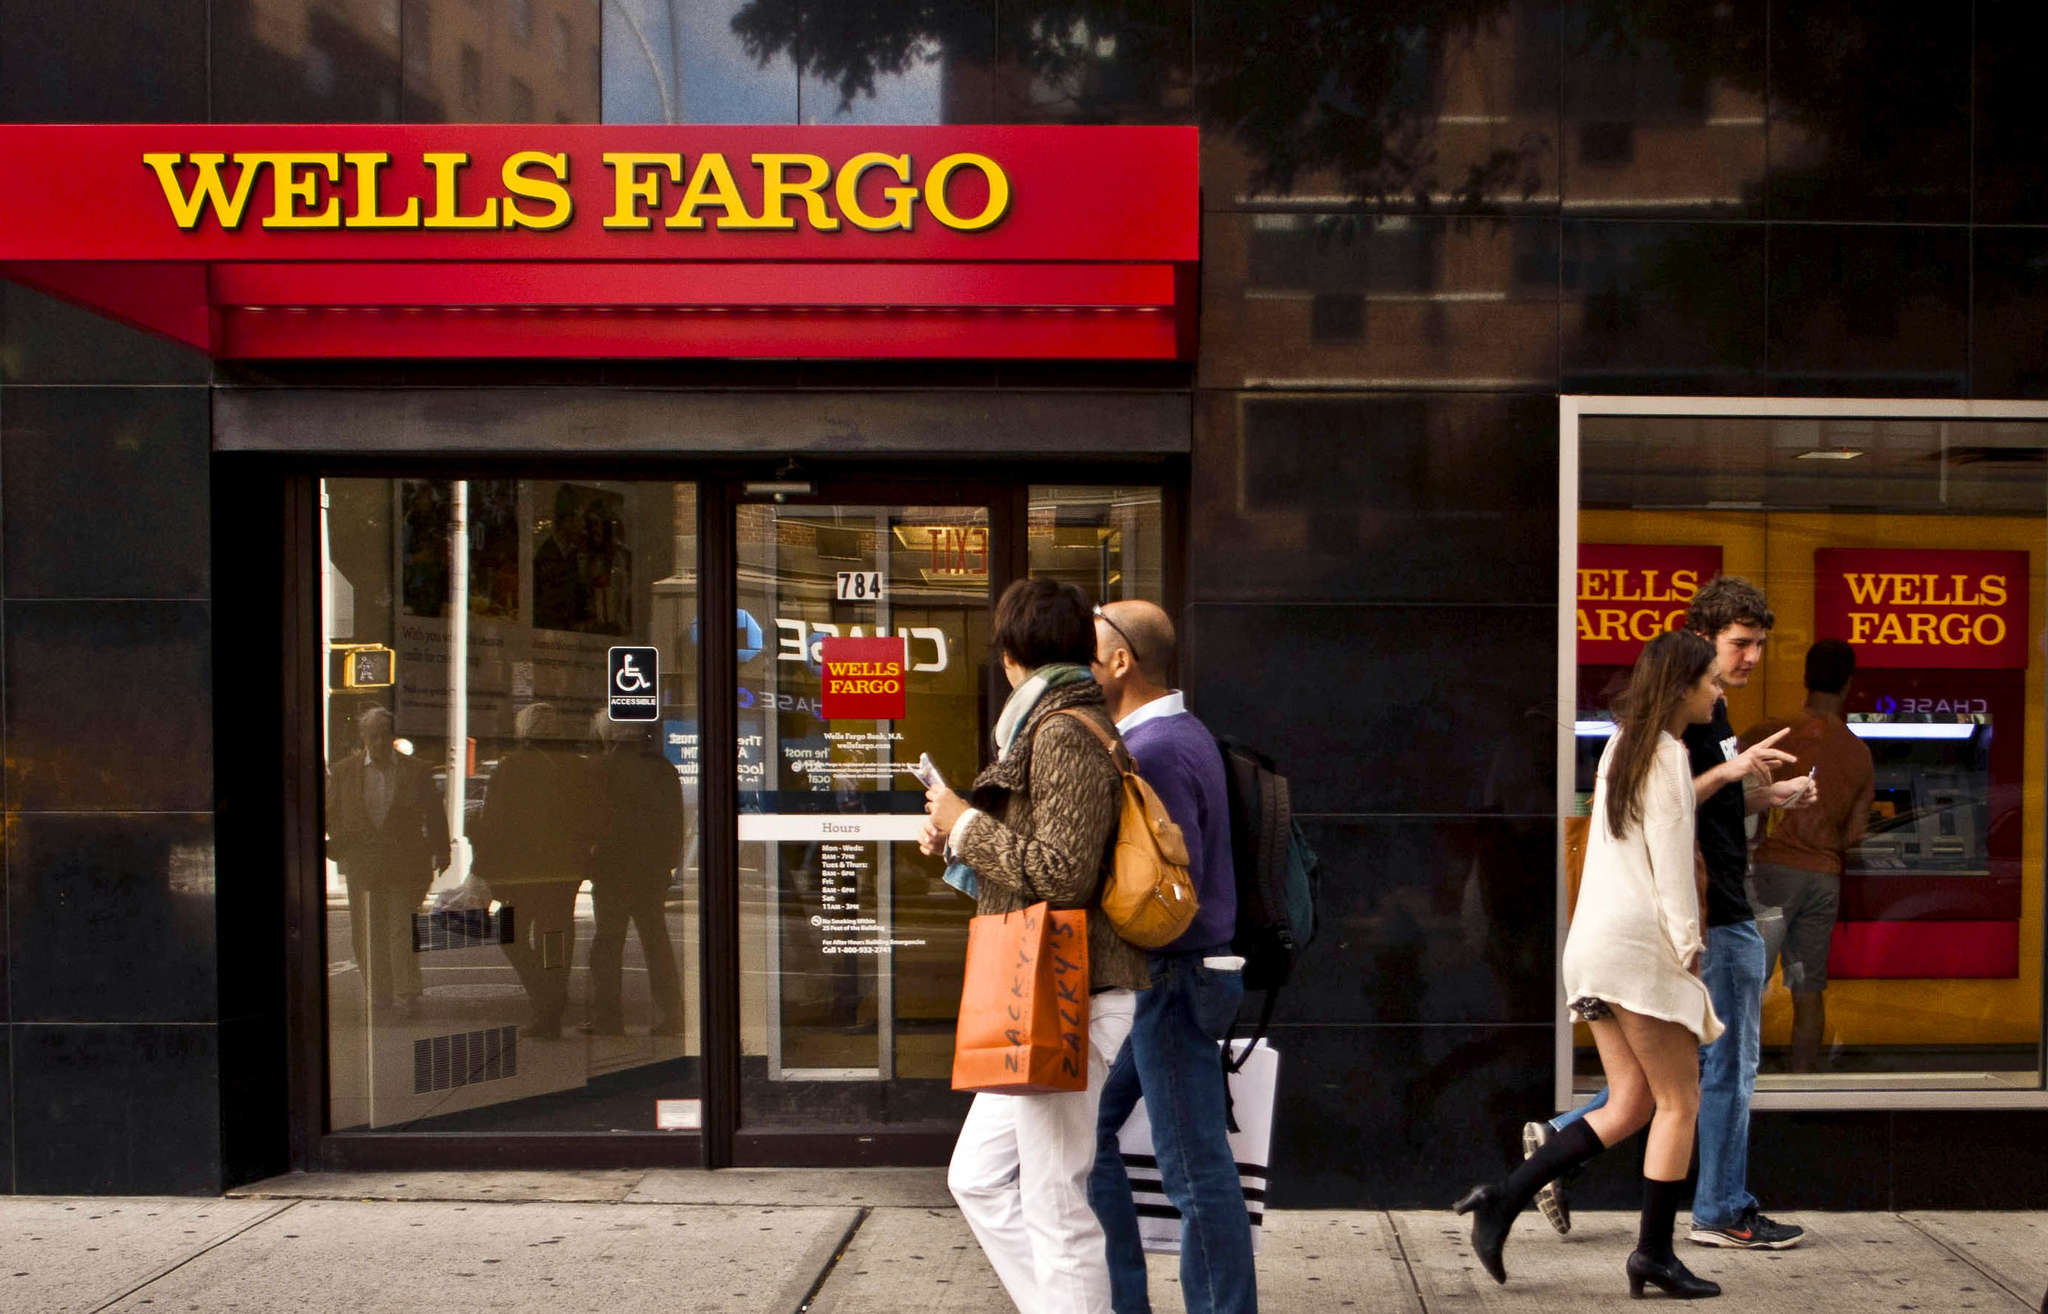 Wells Fargo´s CEO suggested in testimony that the nearly 80,000 fake accounts opened in Pennsylvania were comparatively few.